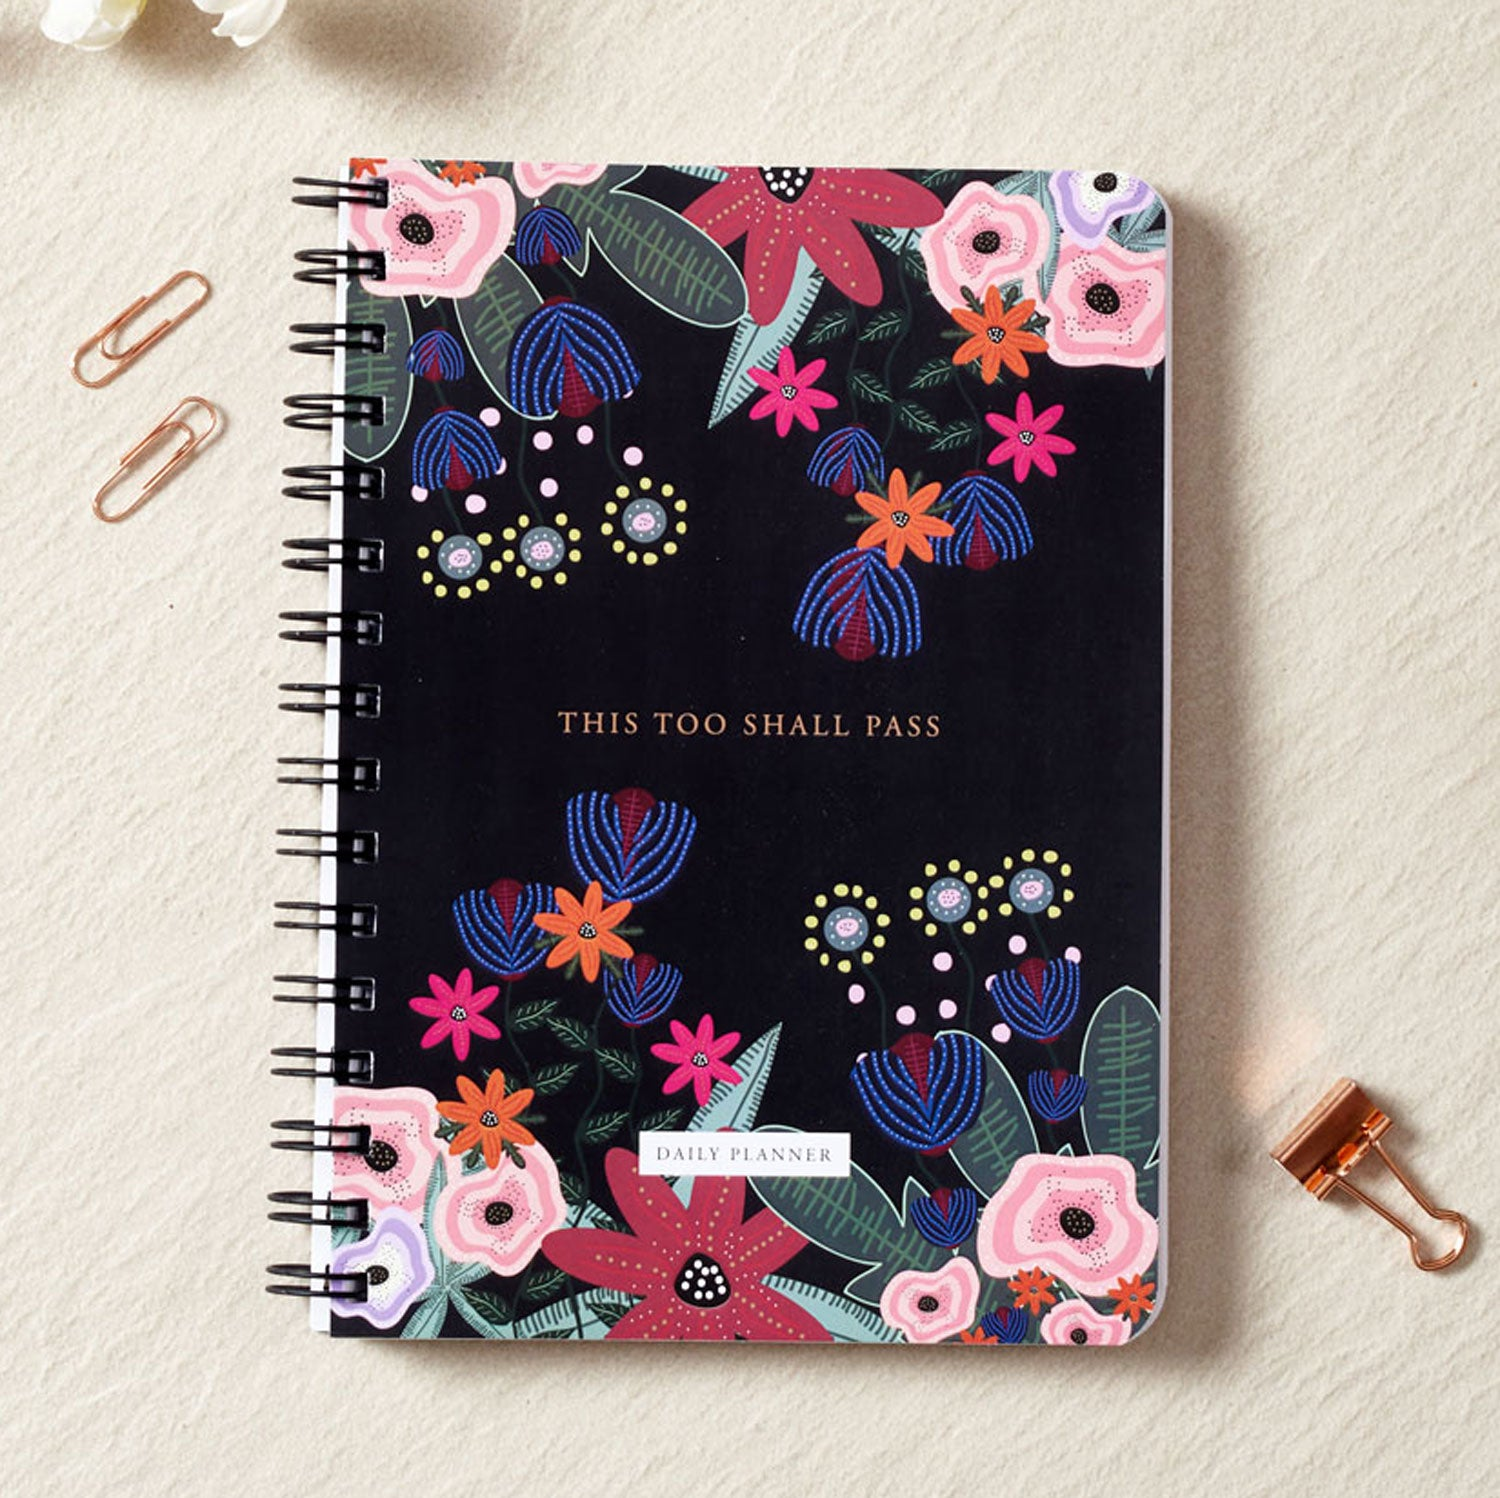 This Too Shall Pass - Daily Planner